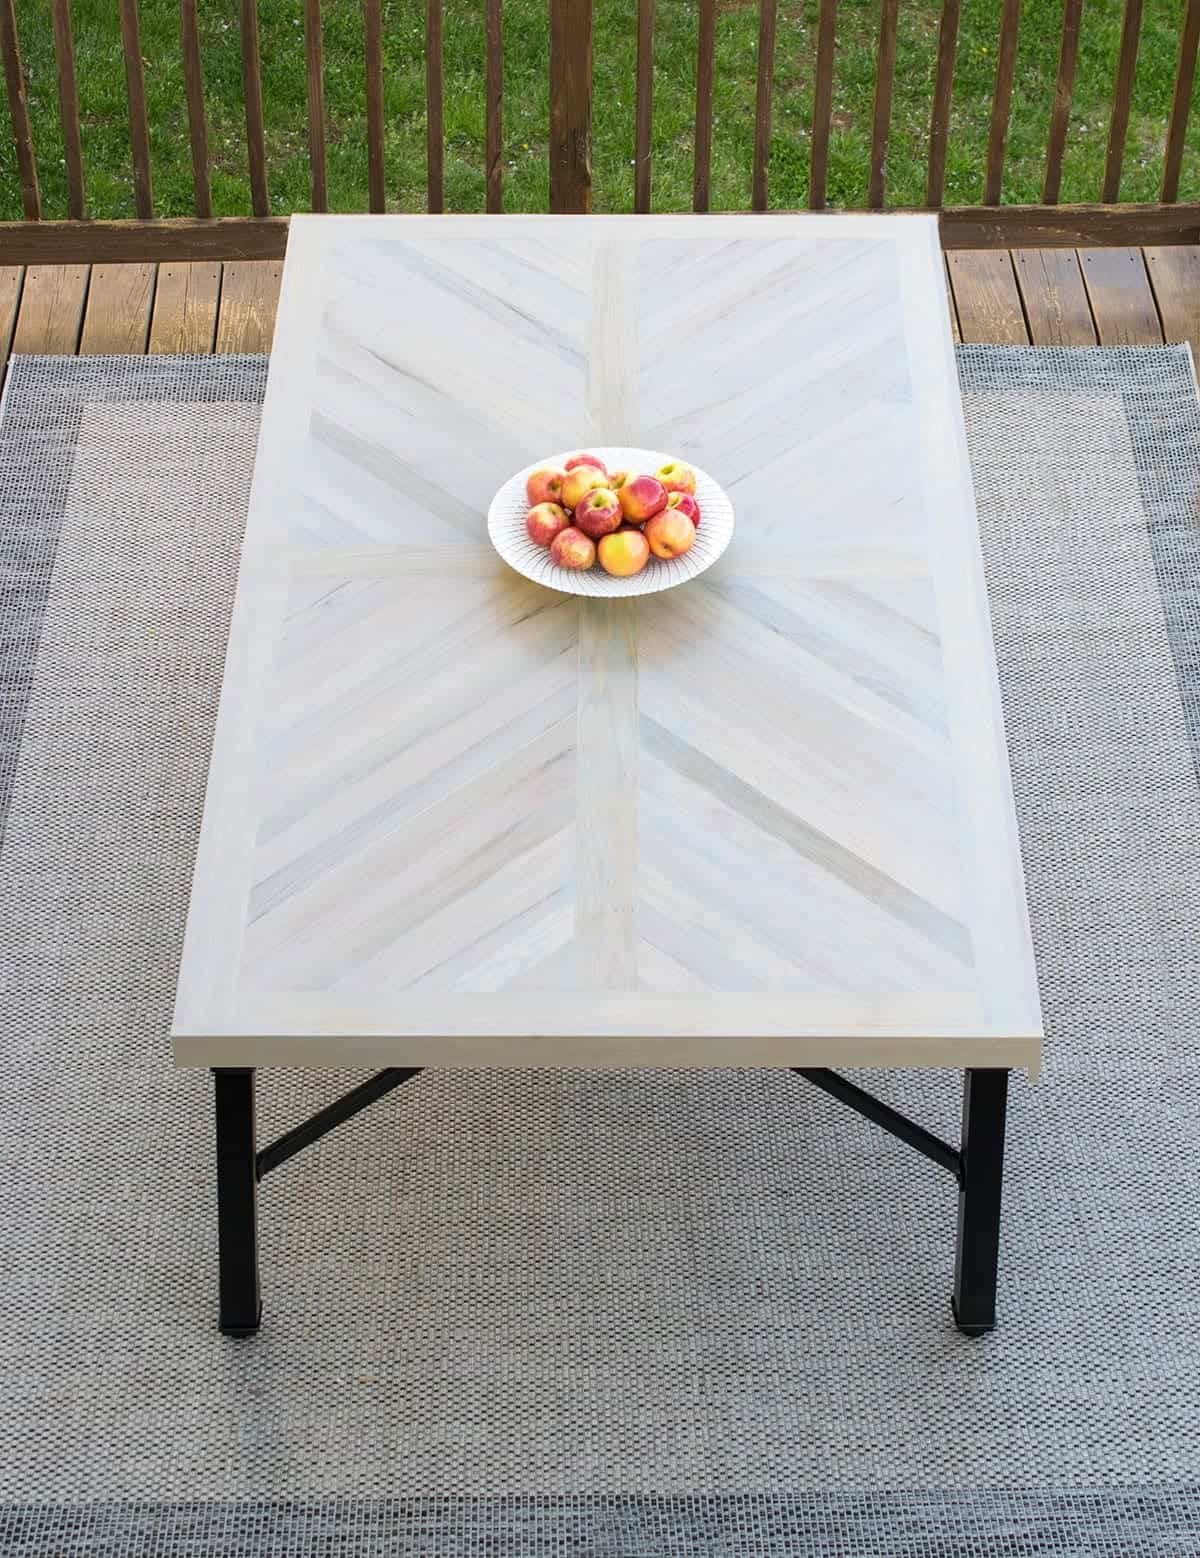 Refinished light gray outdoor dining table with white bowl of peaches in center on outdoor rug on deck.